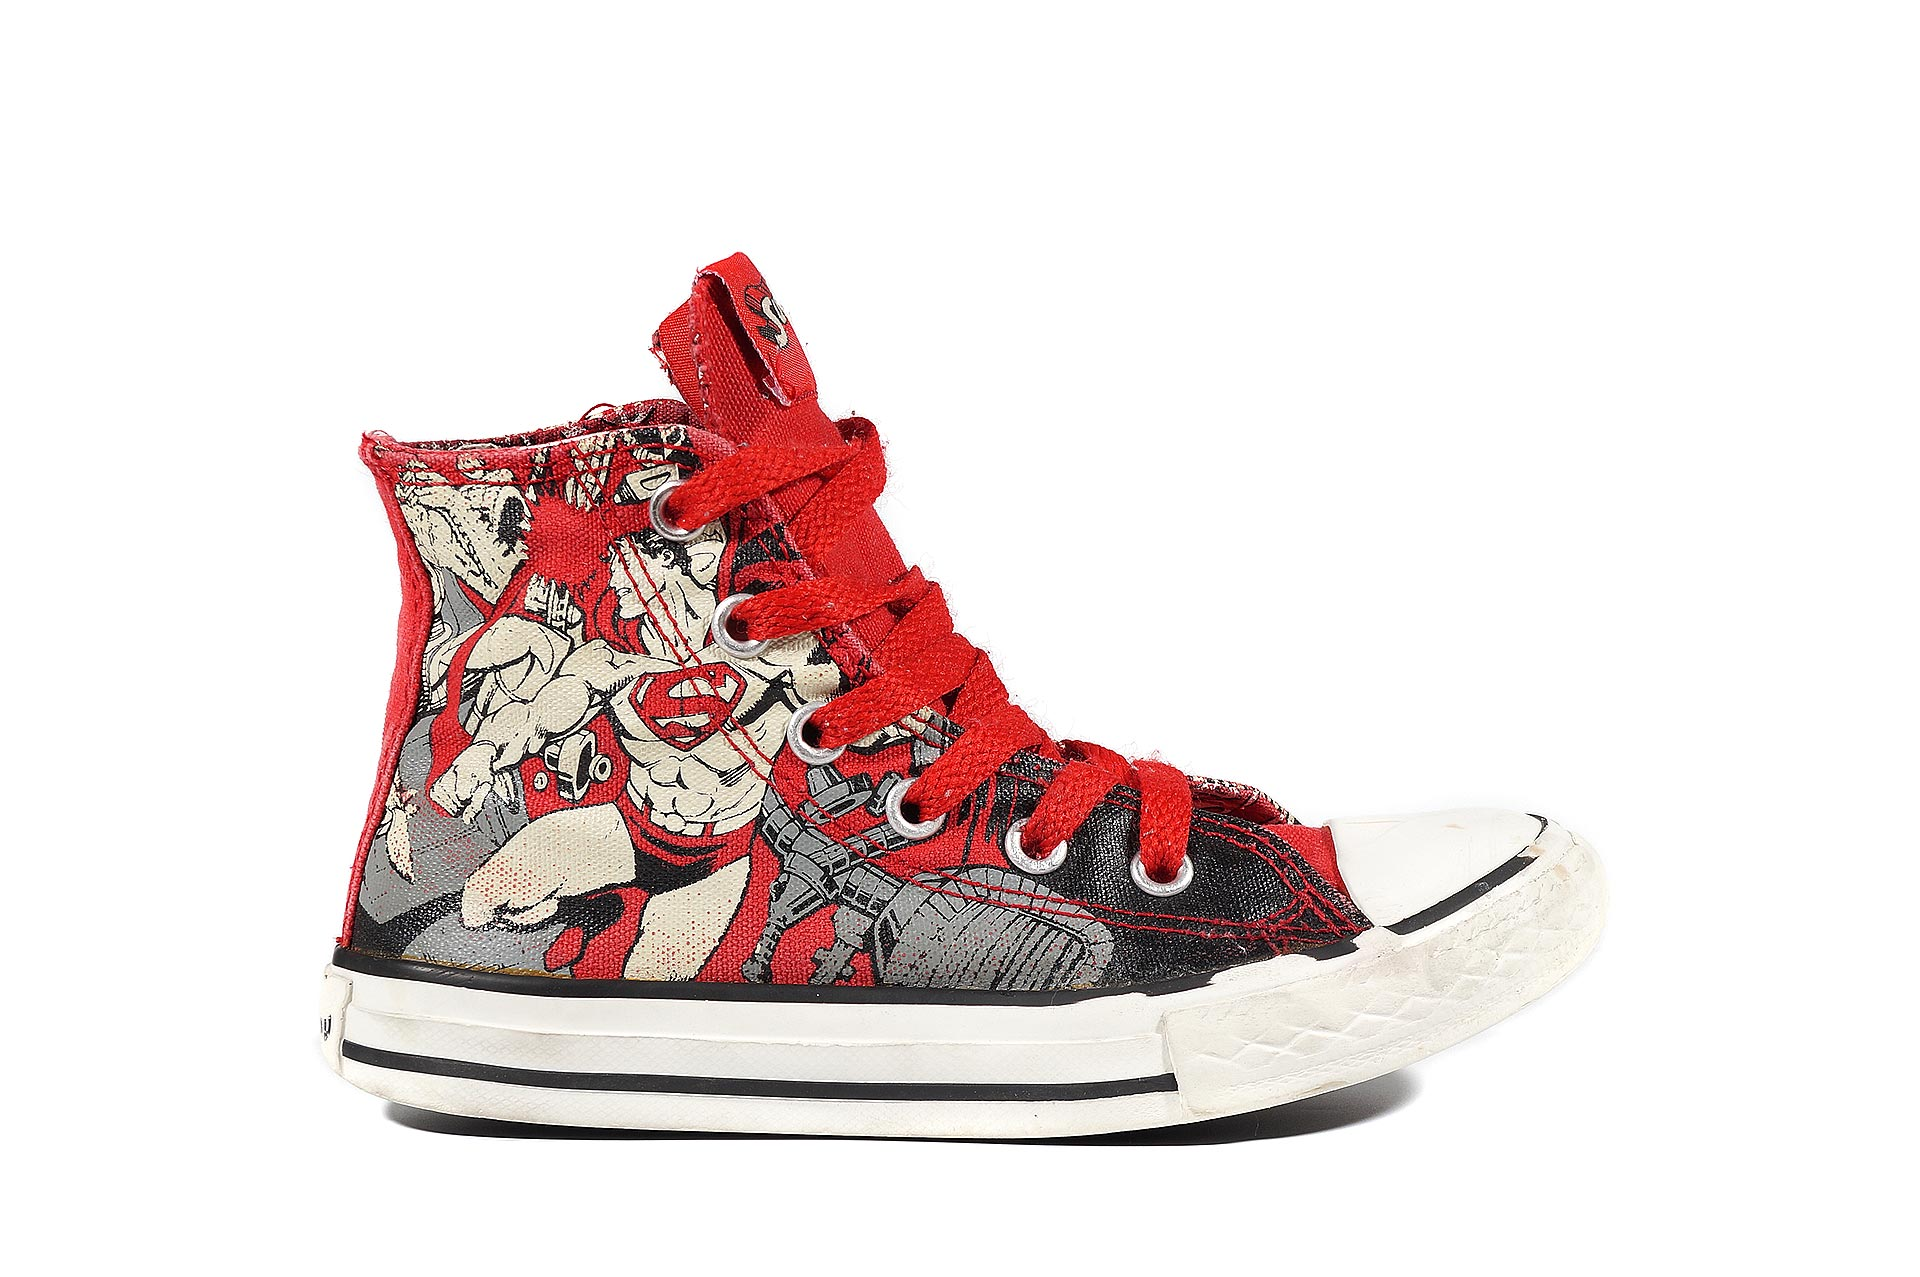 a86a7ccd8817 Converse kids Chuck Taylor All Star DC Comics Superman 322150 (00008-U)